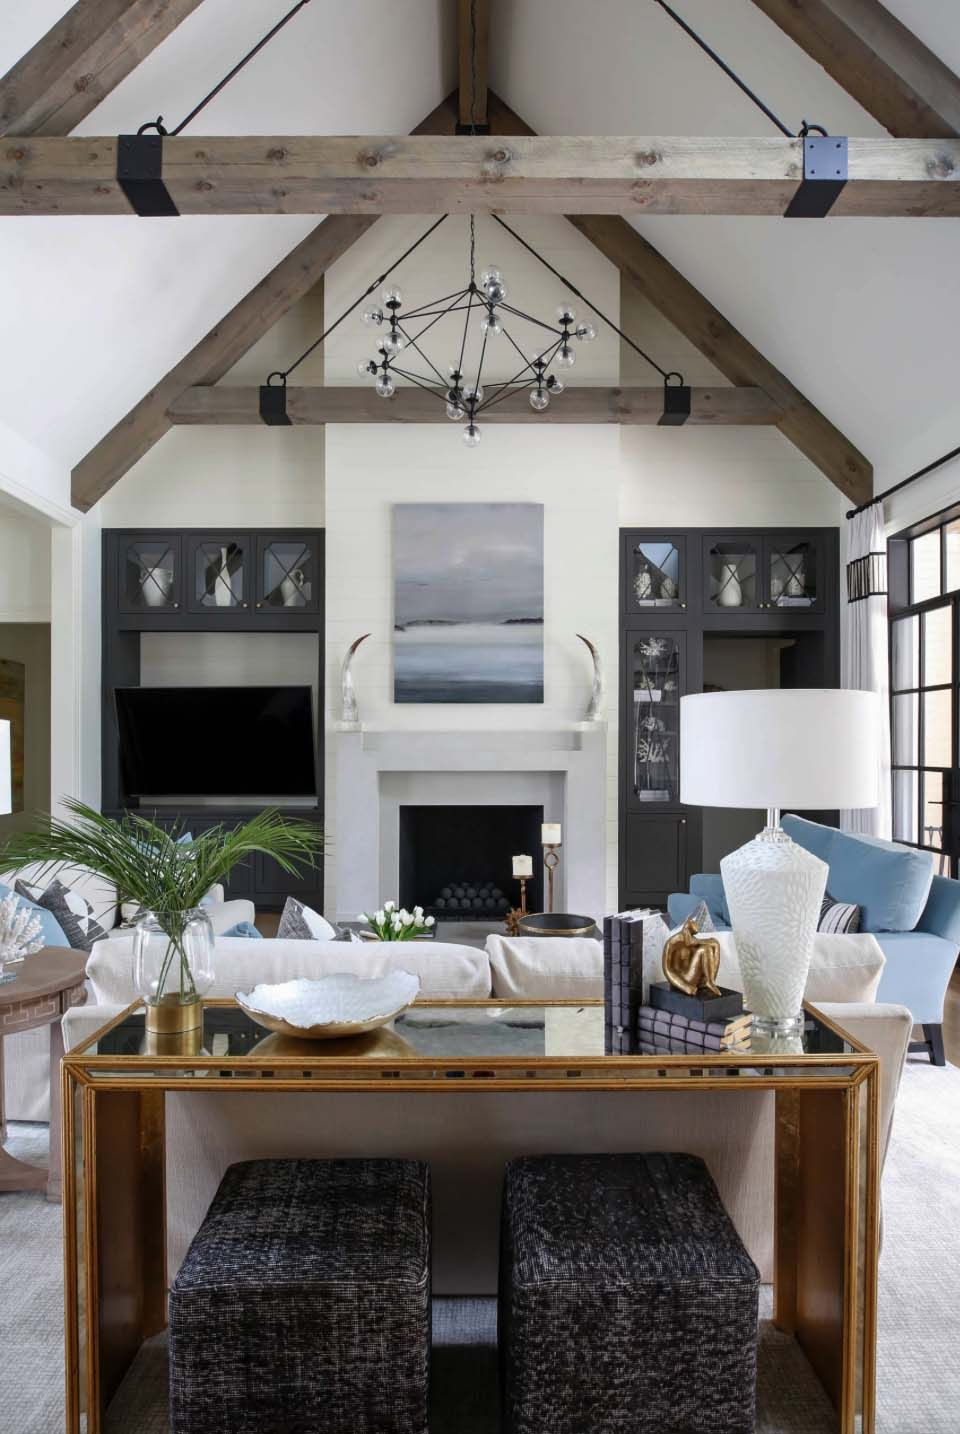 Cape Cod Colonial Home With A Modern Contemporary Twist In Nashville Cozy Living Room Design Transitional Living Rooms Living Room Design Diy